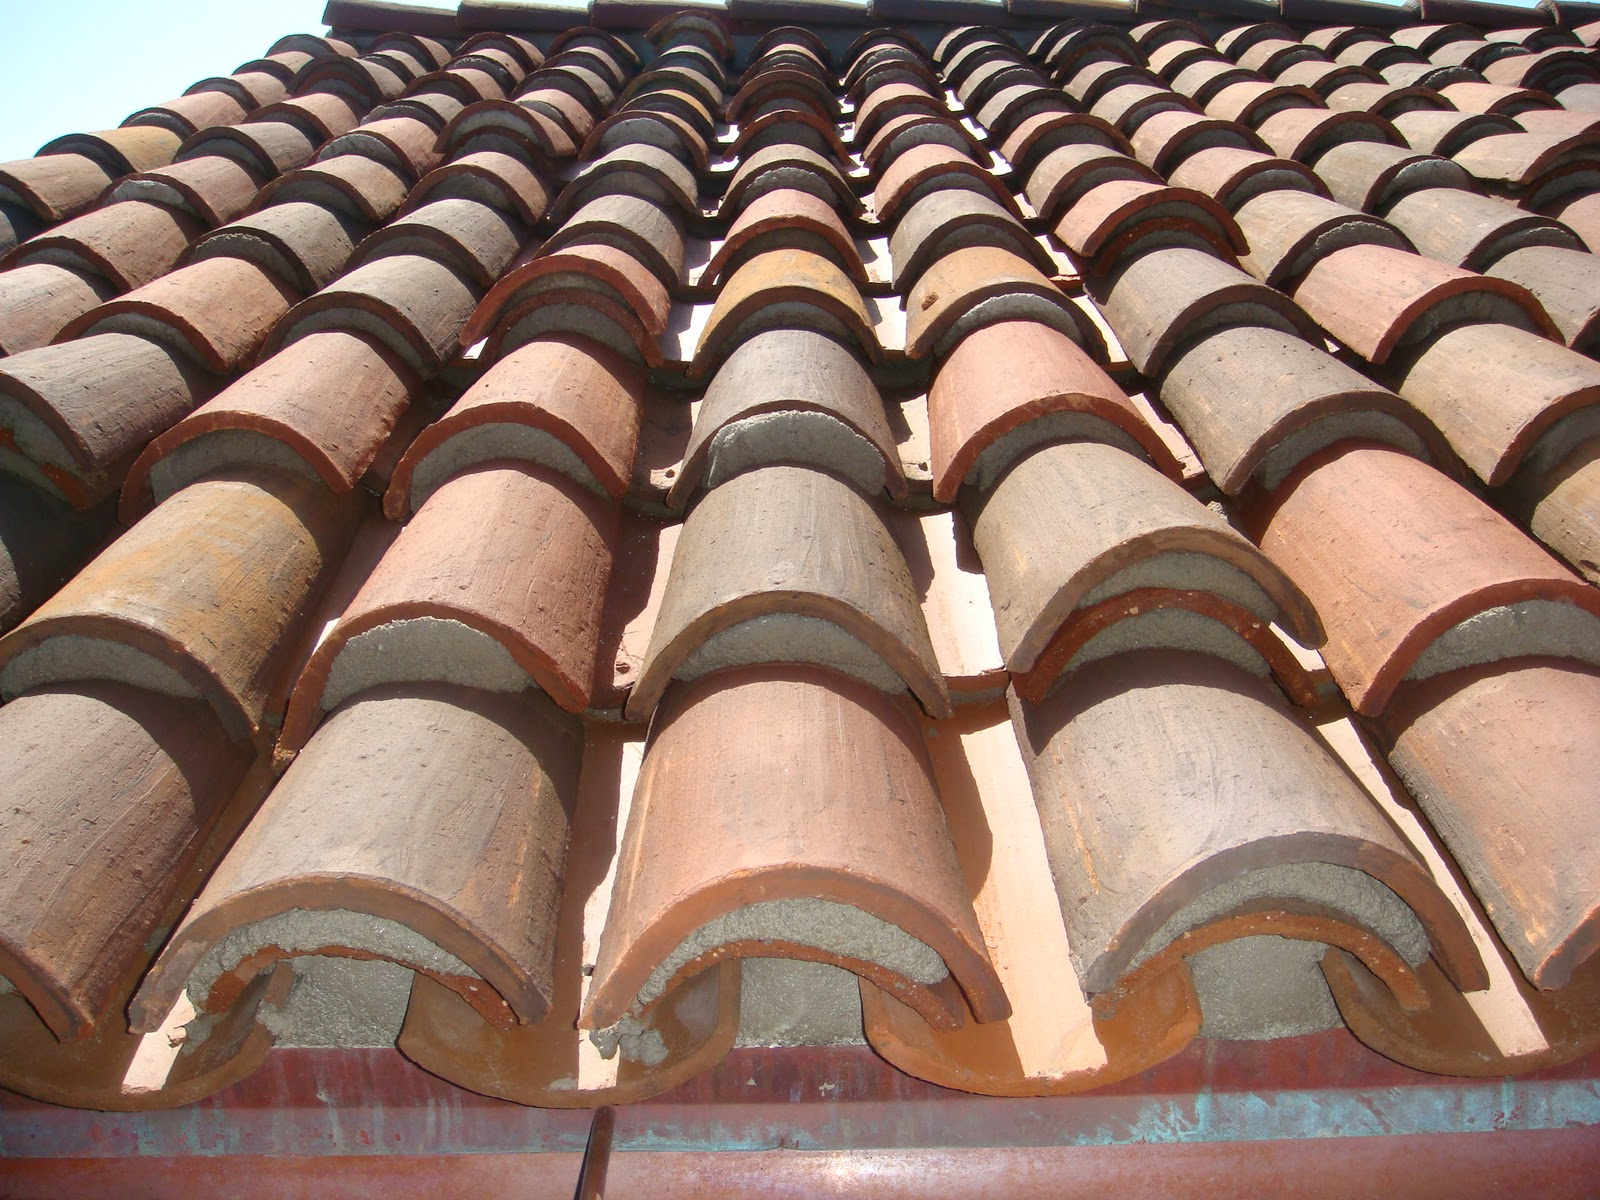 Our Import Line That We Have Also Offers Low Cost Roofing Material  Alternatives. All Of The Roofing Materials That We Offer Meet And Exceed  All Astm And ICC ...